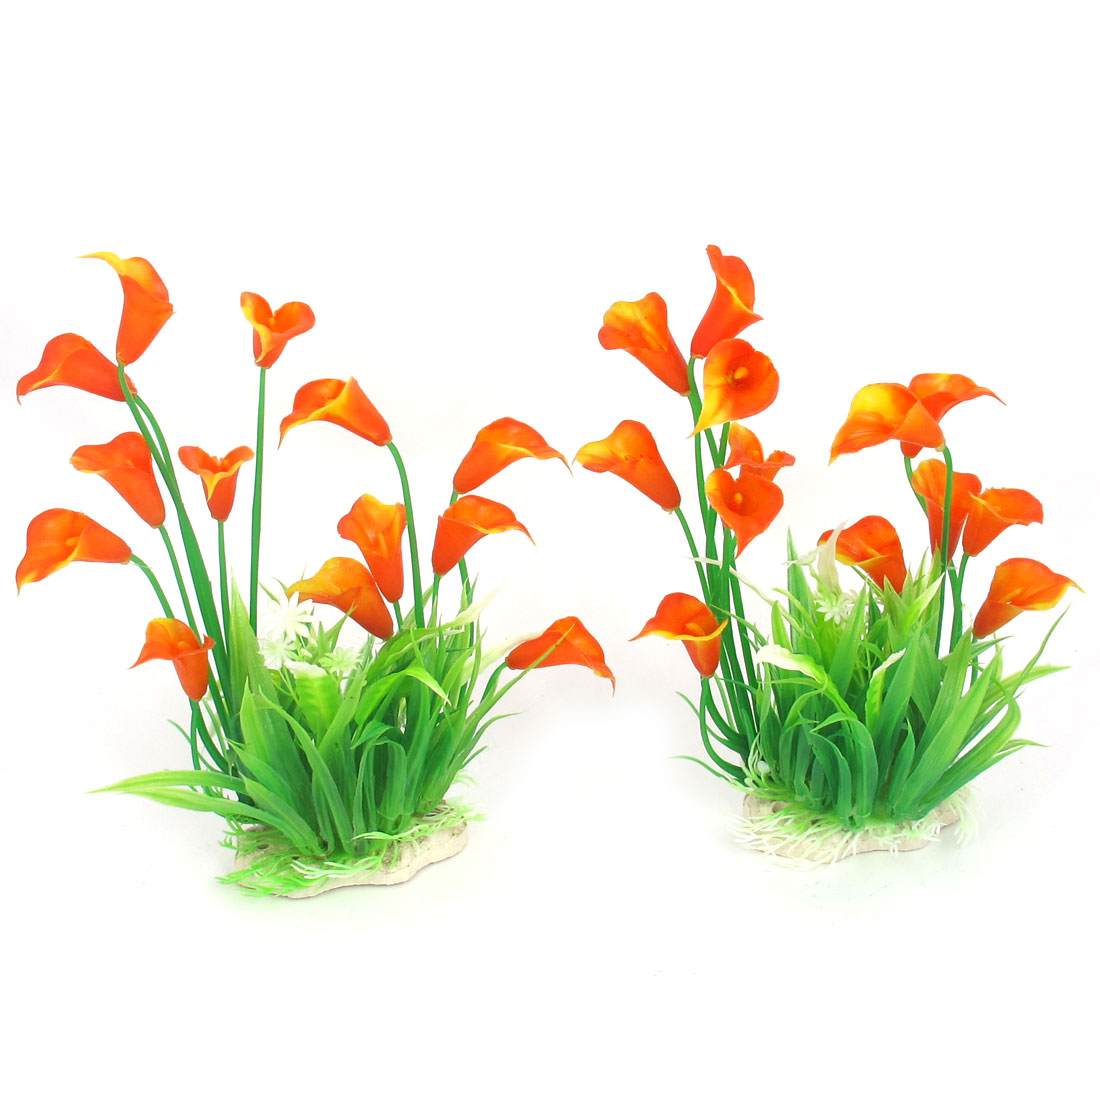 2 Pcs Green Orange Plastic Ceramic Base Artificial Flower Ornament Plant for Aquarium Fishbowl